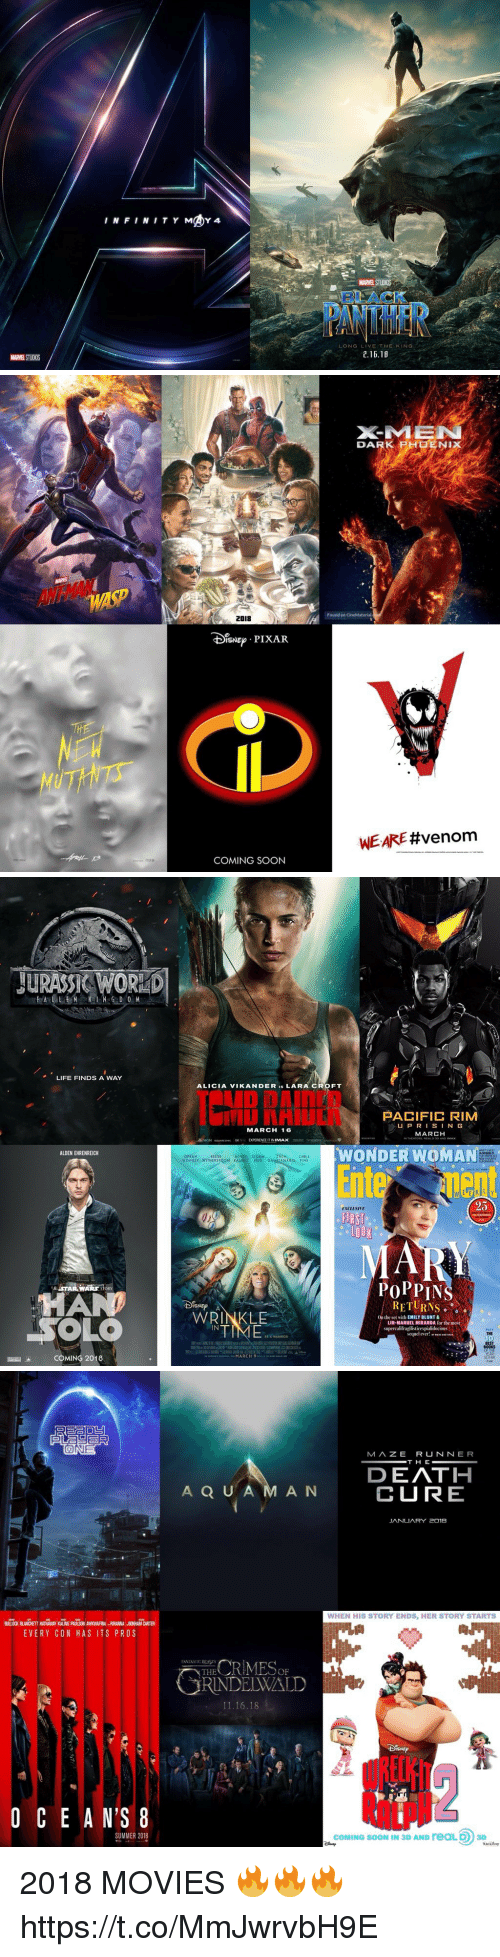 Oprah Winfrey: BLACK  LONG LIVE THE KING  .16.18  MARVEL STUDIOS   DA R K  PH □E N IX  /./A  WASP  2018  IsNEPIXAR  WE ARE #venom  COMING SOON   JURASS& WOR  LIFE FINDS A WAY  ALICIA VIKANDER IS LARA CROFT  ID DAInrD  IU NHIUIN PACIFIC RIM  UPRISIN G  MARCH  MARCH 16  IN THEATERS  MGM soUARE ENK  EXPERIENCE IT INIMAXR  WONDER WOMAN  Entenent  ALDEN EHRENREICH  SEQUEL  OPRAH  WINFREY WITHERSPOON KALING REID GALIEIANAKIS PINE  25  EXCLUSIVE  FIRST  。100 。  MAN  PoPPIN  I RETURNS 。  WRINKLE  On the set with EMILY BLUNT&  LIN-MANUEL MIRANDA for the most  IN  supercalifragilisticexpialidocious  sequel ever! .ANT  BEST  COMING 2018  FAR   MAZE RUNNER  DEATH  CURE  A Q U A M A N  JANUARY 2o1e  WHEN HIS STORY ENDS, HER STORY STARTS  BULOCK BLANCHETT HATHAWAY KALING PAULSON AWKWAFINA RIHANNA BONHAM CARTER  EVERY CON HAS ITS PROS  THERIMEop  RINDELWALD  FANTASTICBEASTS  11.16.18  O C E A N'S 8  RlLpN  SUMMER 2018  COMING SOON IN 3D AND reaLD 3D 2018 MOVIES 🔥🔥🔥 https://t.co/MmJwrvbH9E